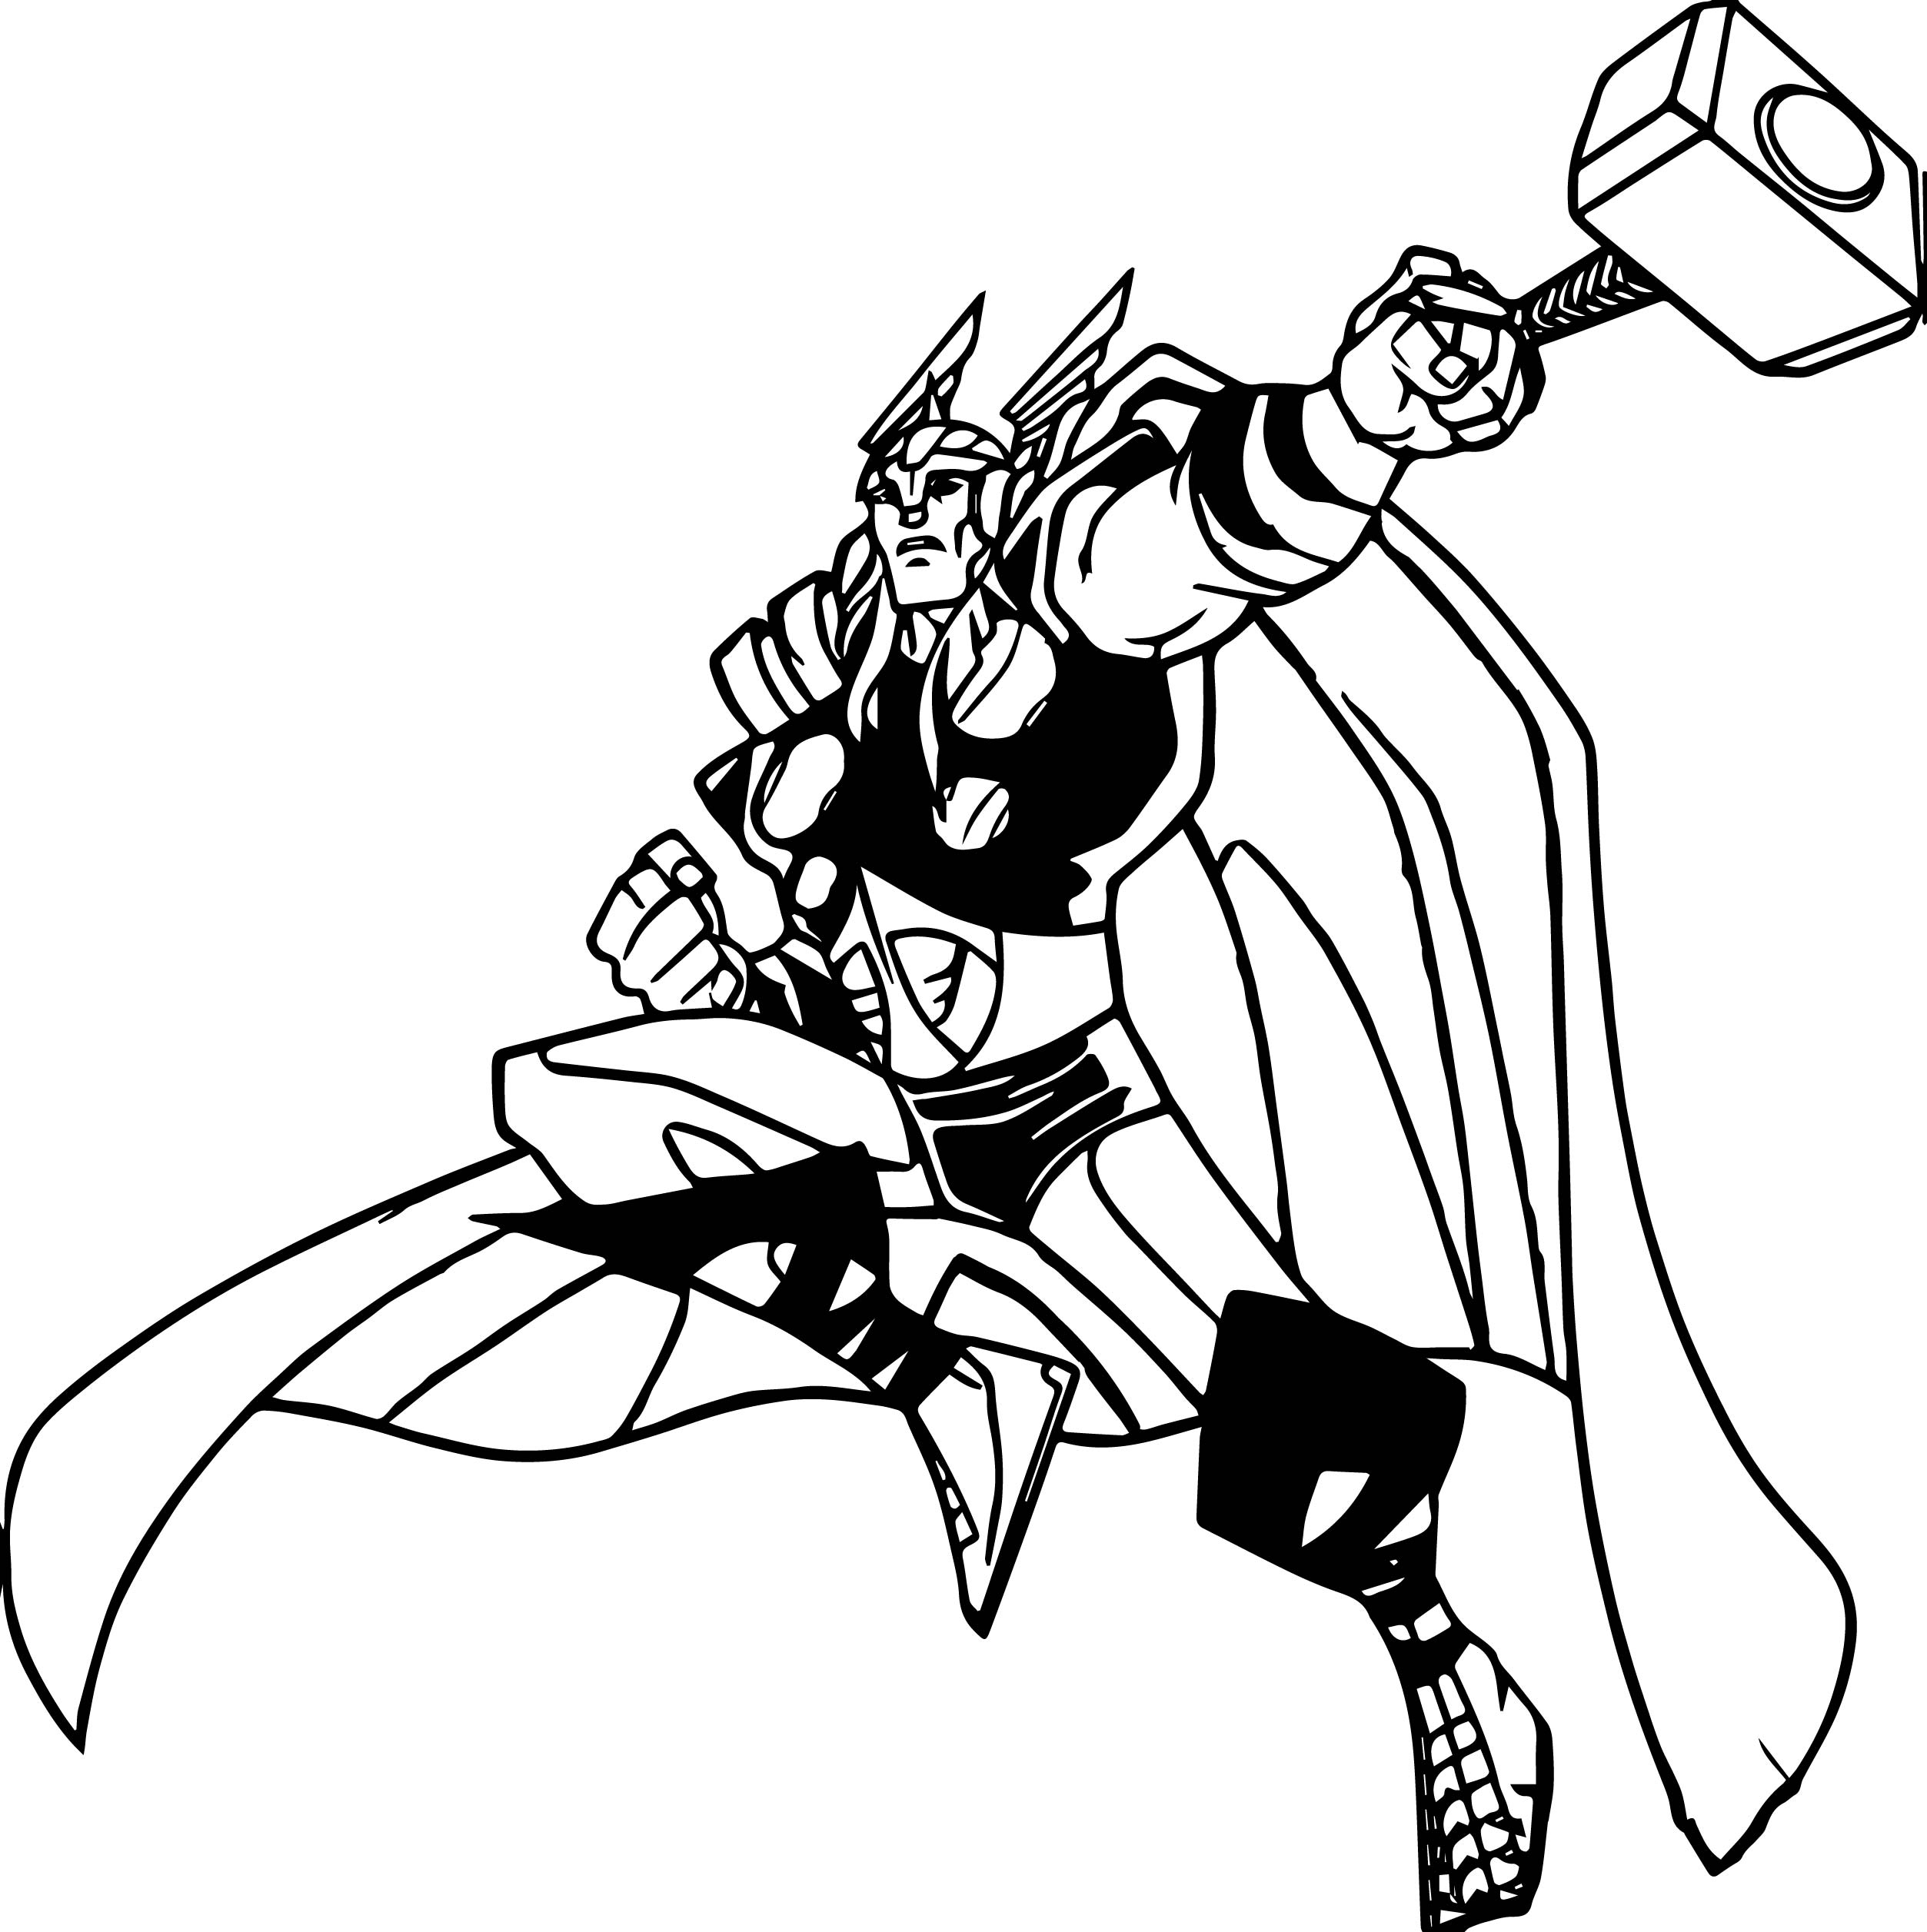 2506x2513 Marvels Avengers Thor Cartoon Coloring Page Wecoloringpage